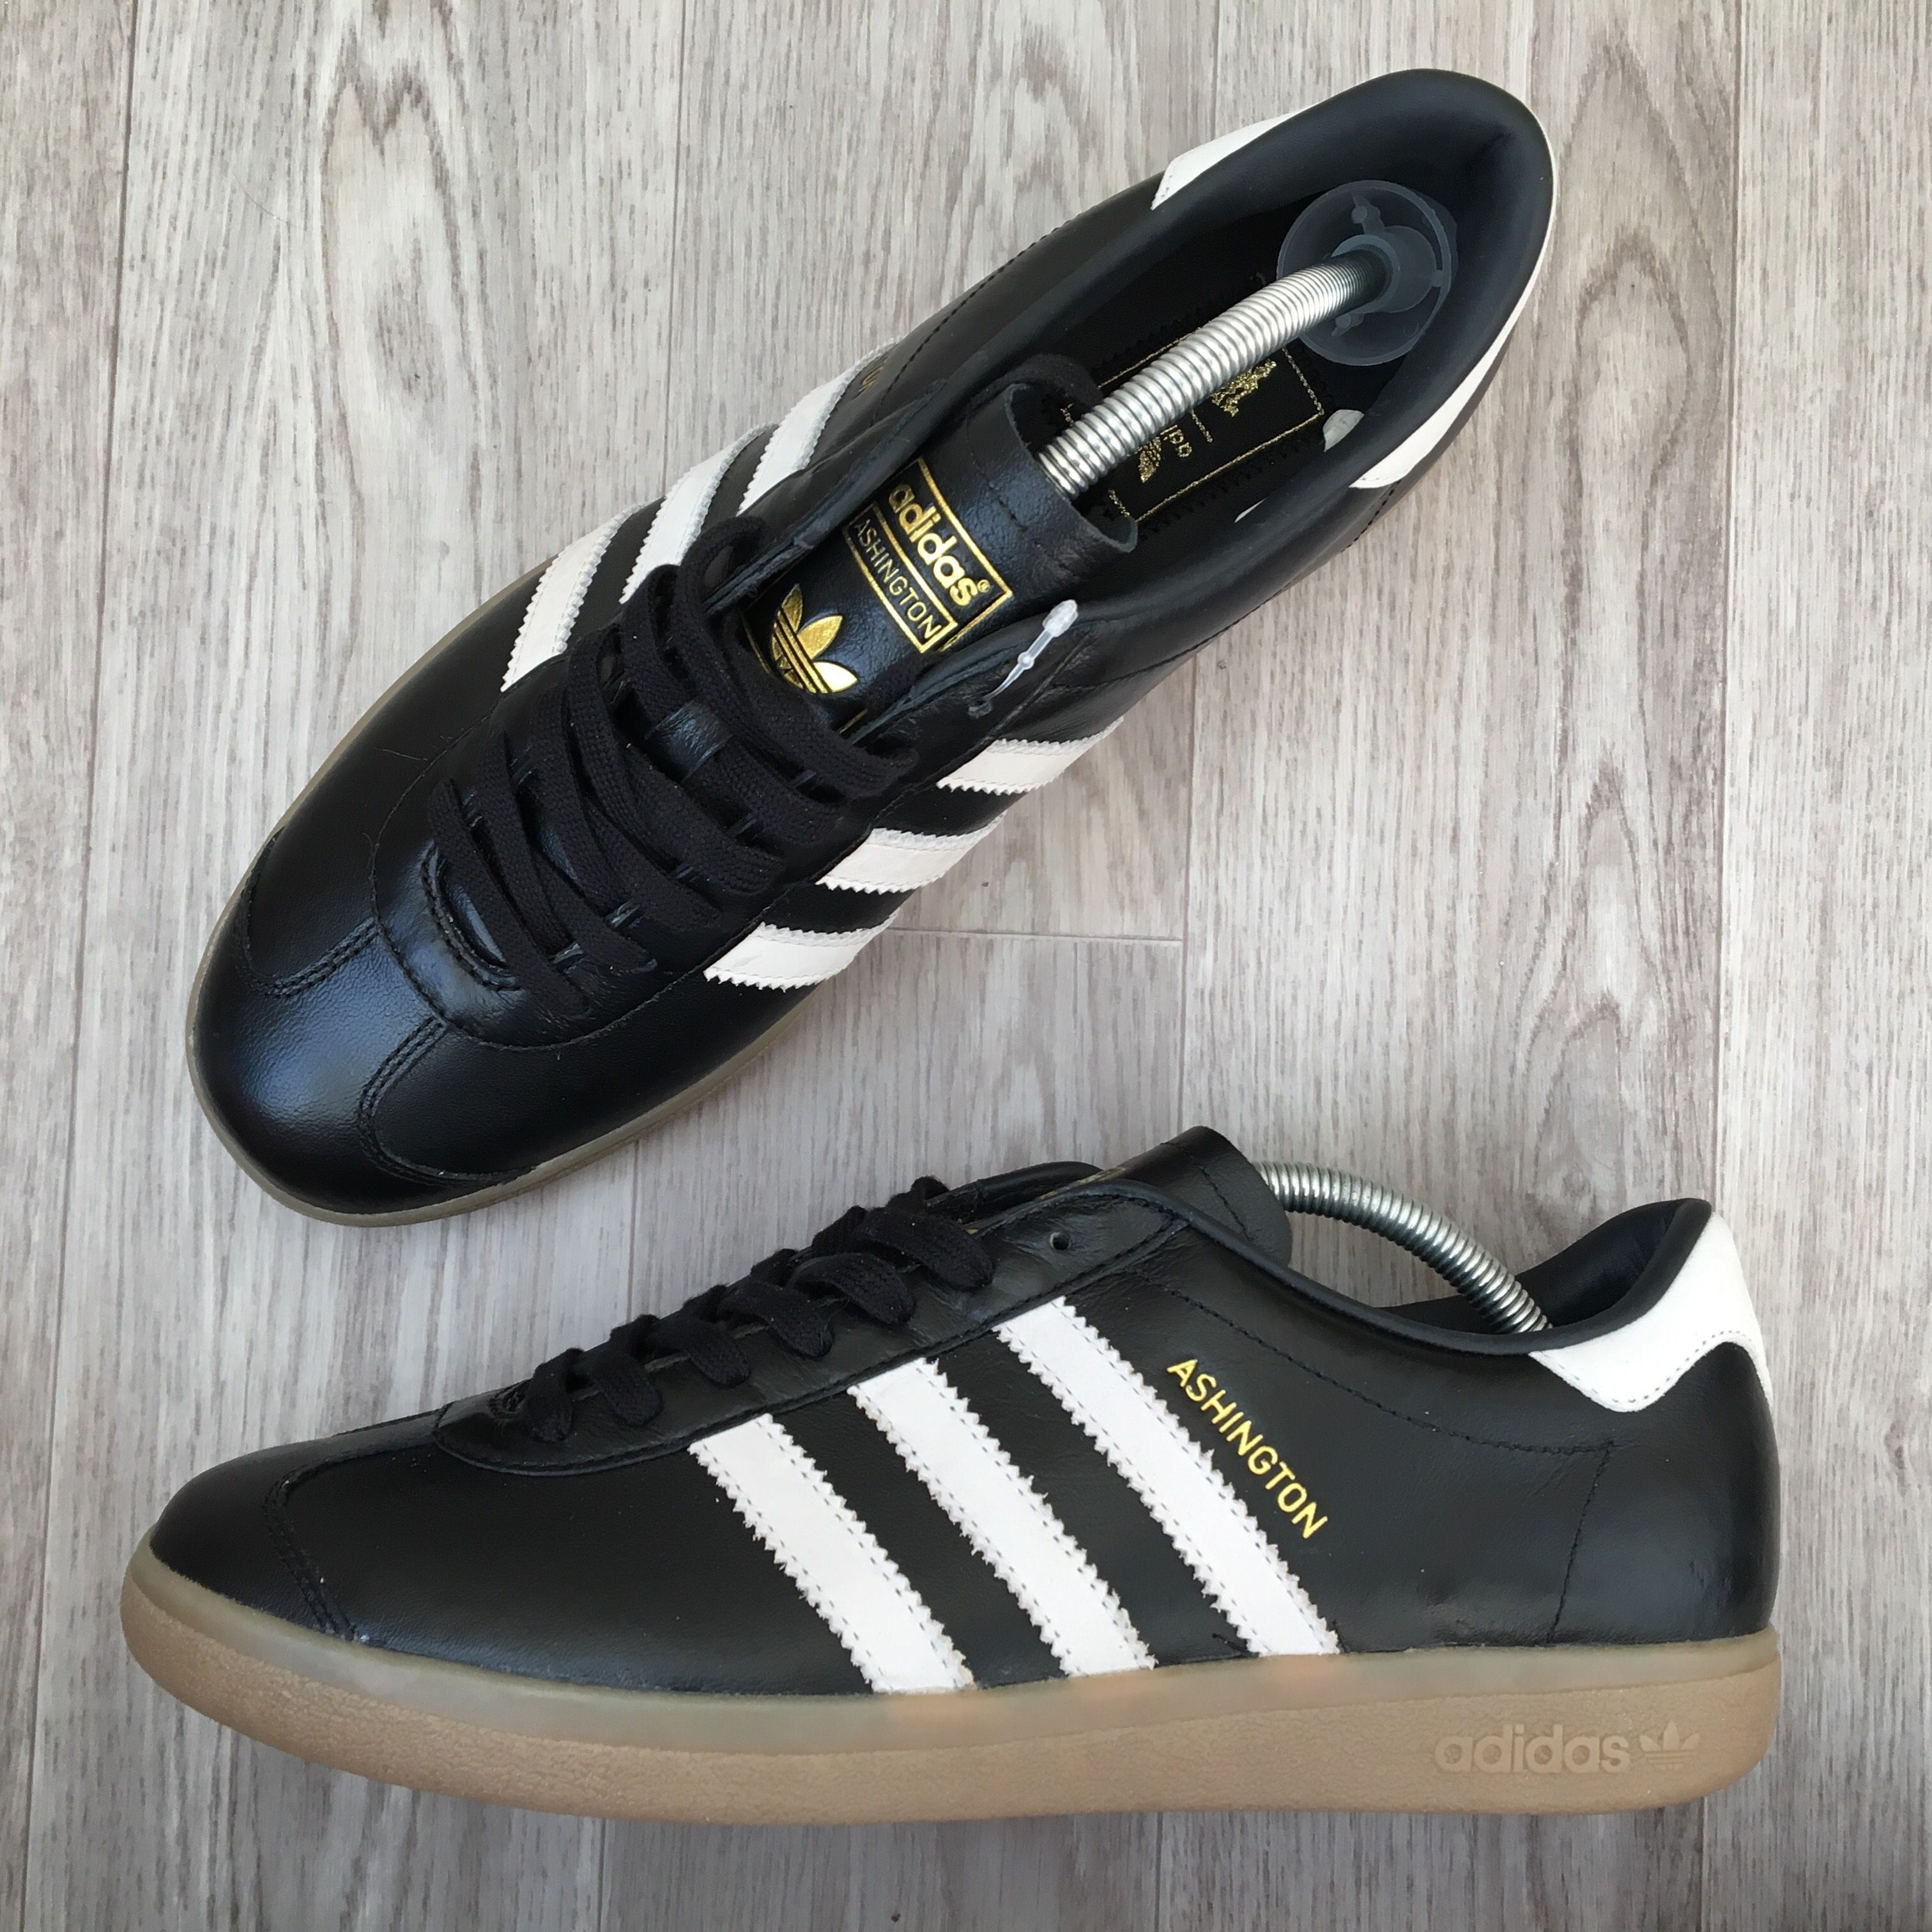 cheap for discount 994b0 d3fc2 Adidas Ashington. Article BZ0578. Year 0916. Made in Vietnam.